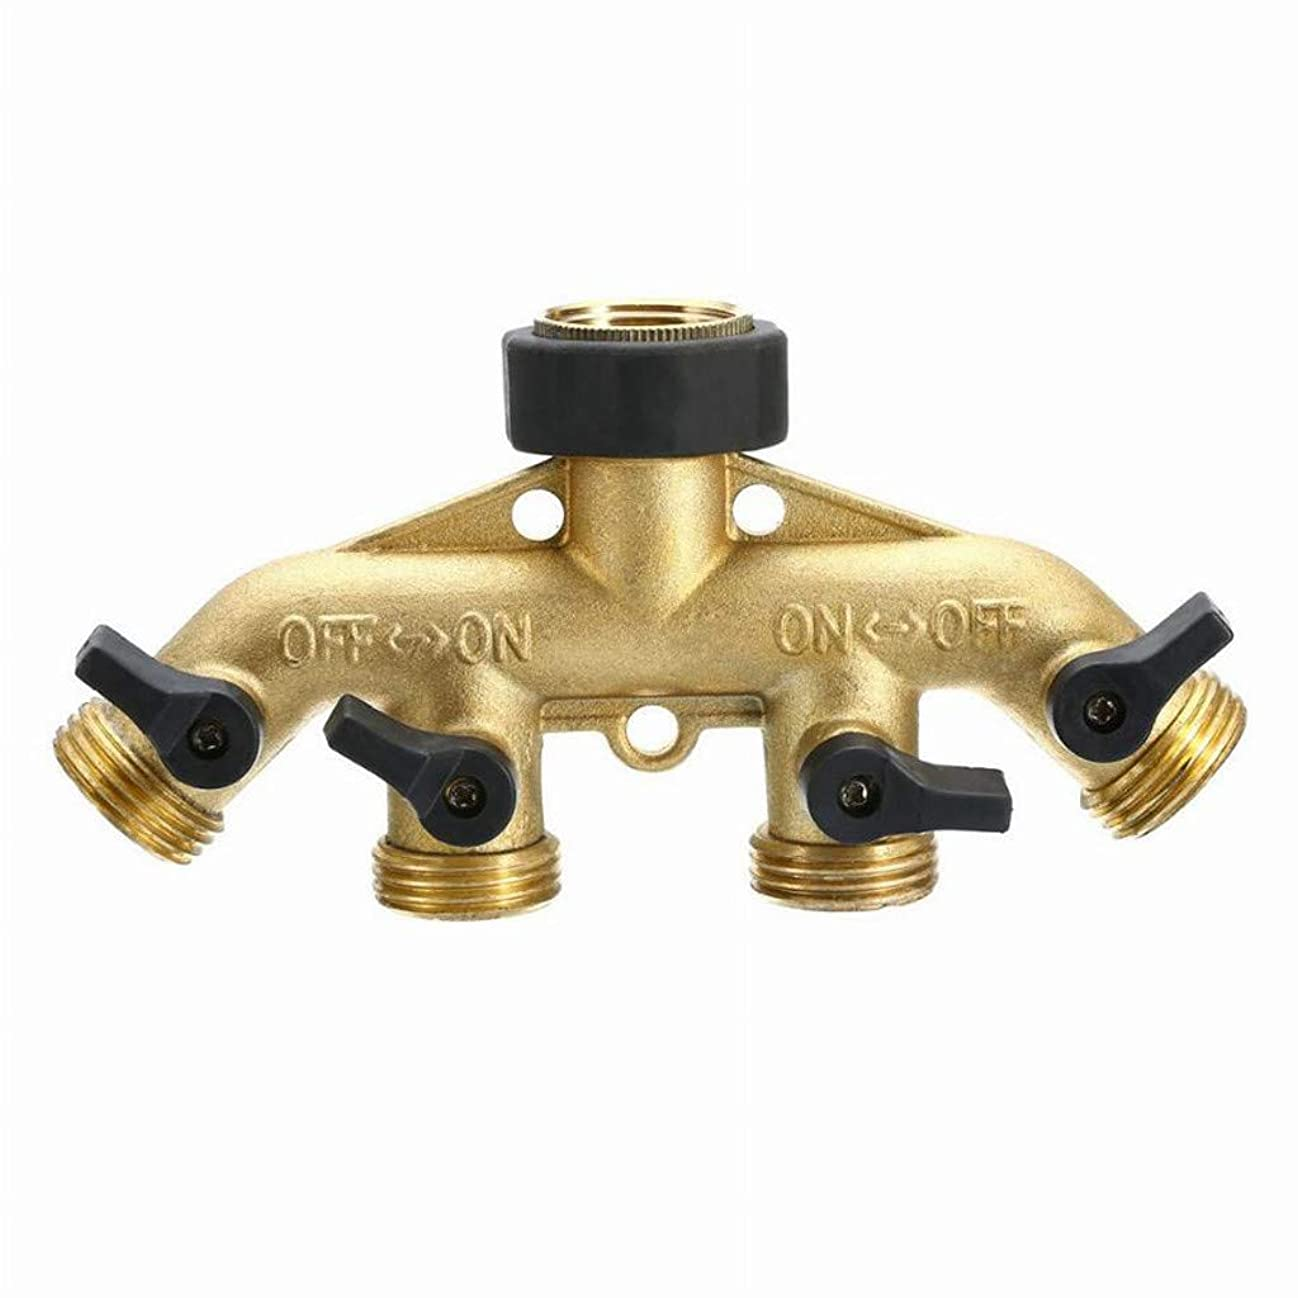 WPOtee Garden Hose Splitter | 4 Way Brass Tap Hose Connectors Water Distributor Highly Durable Water Manifold Connector (Gold) glrgc326316